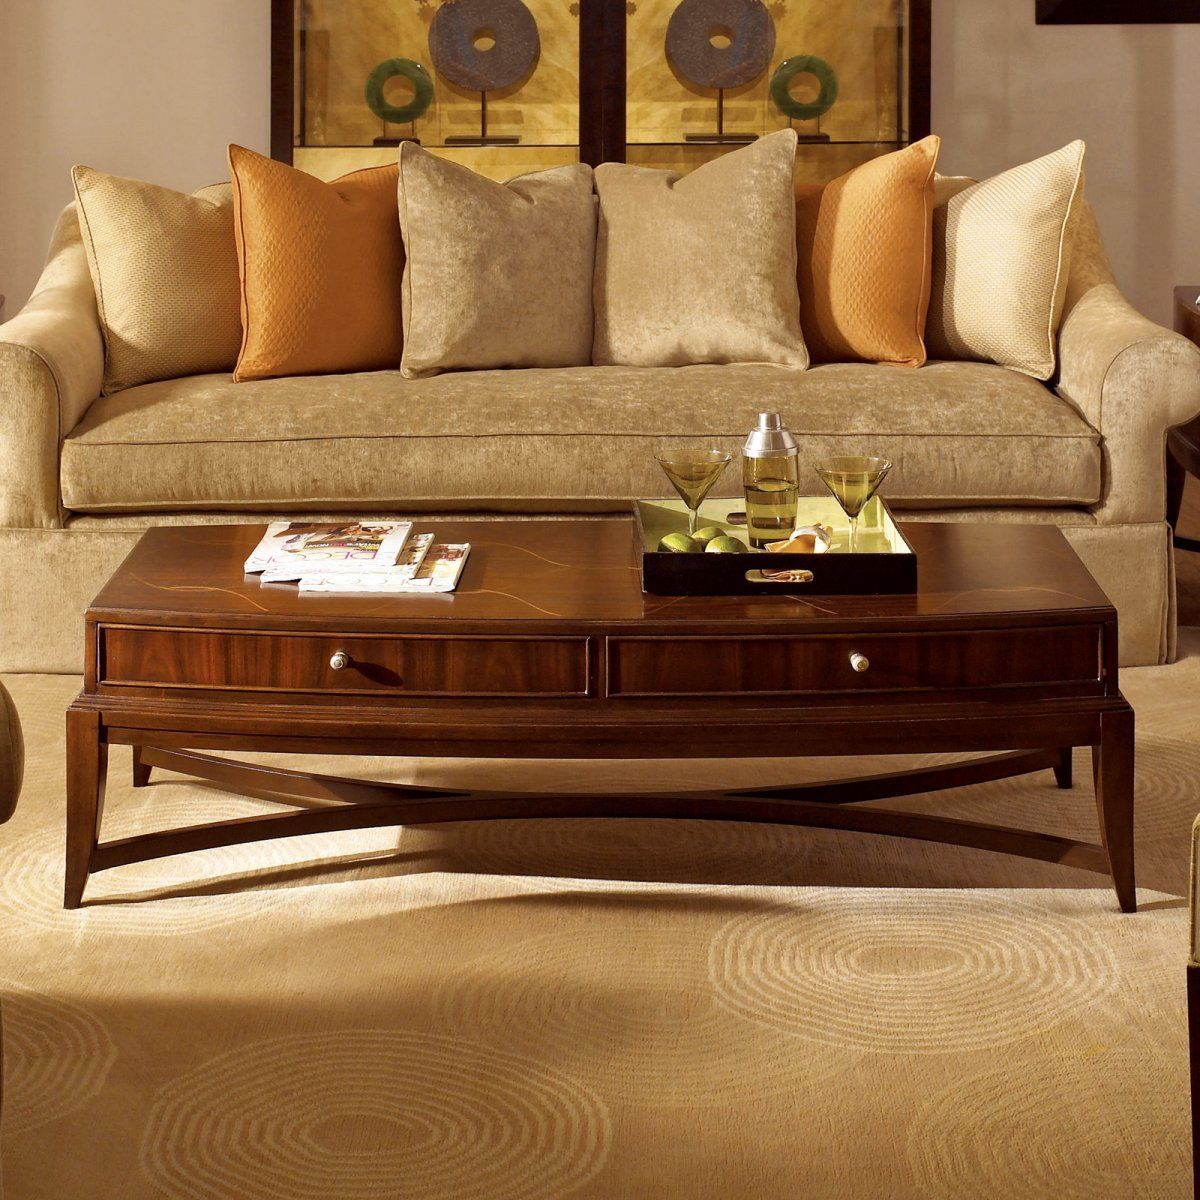 American Drew Bob Mackie Home Signature Rectangular Coffee Table With 2 Drawers Coffee Table Rectangular Coffee Table Table